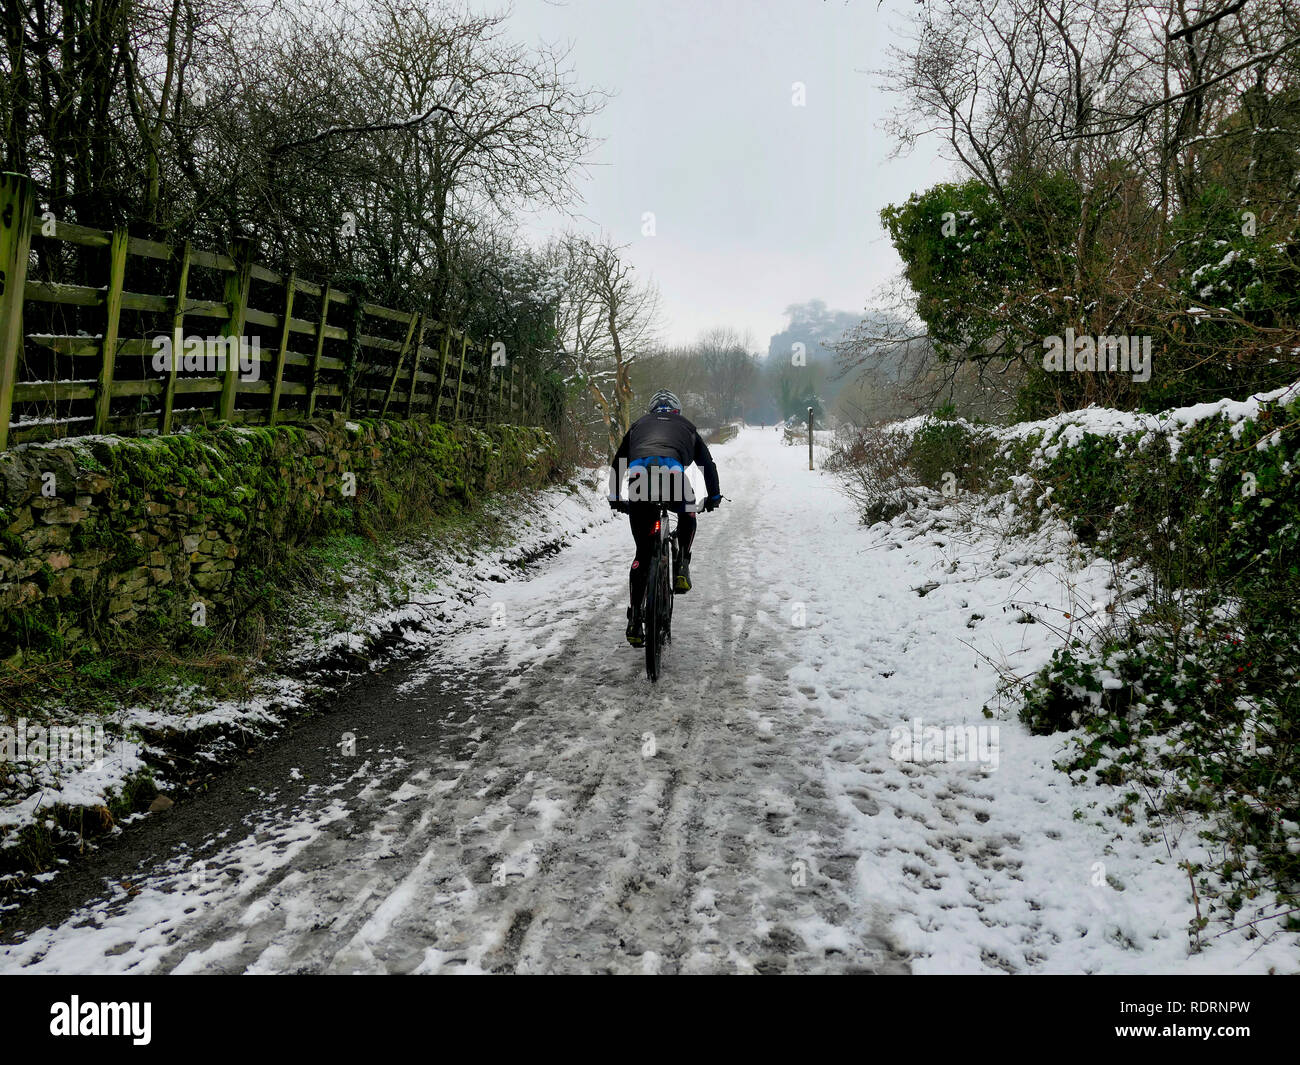 UK Weather: mountain bikers enjoying the snow conditions along the High Peak Trail, Black Rocks, Bolehill, Derbyshire, Peak District National Park Credit: Doug Blane/Alamy Live News - Stock Image